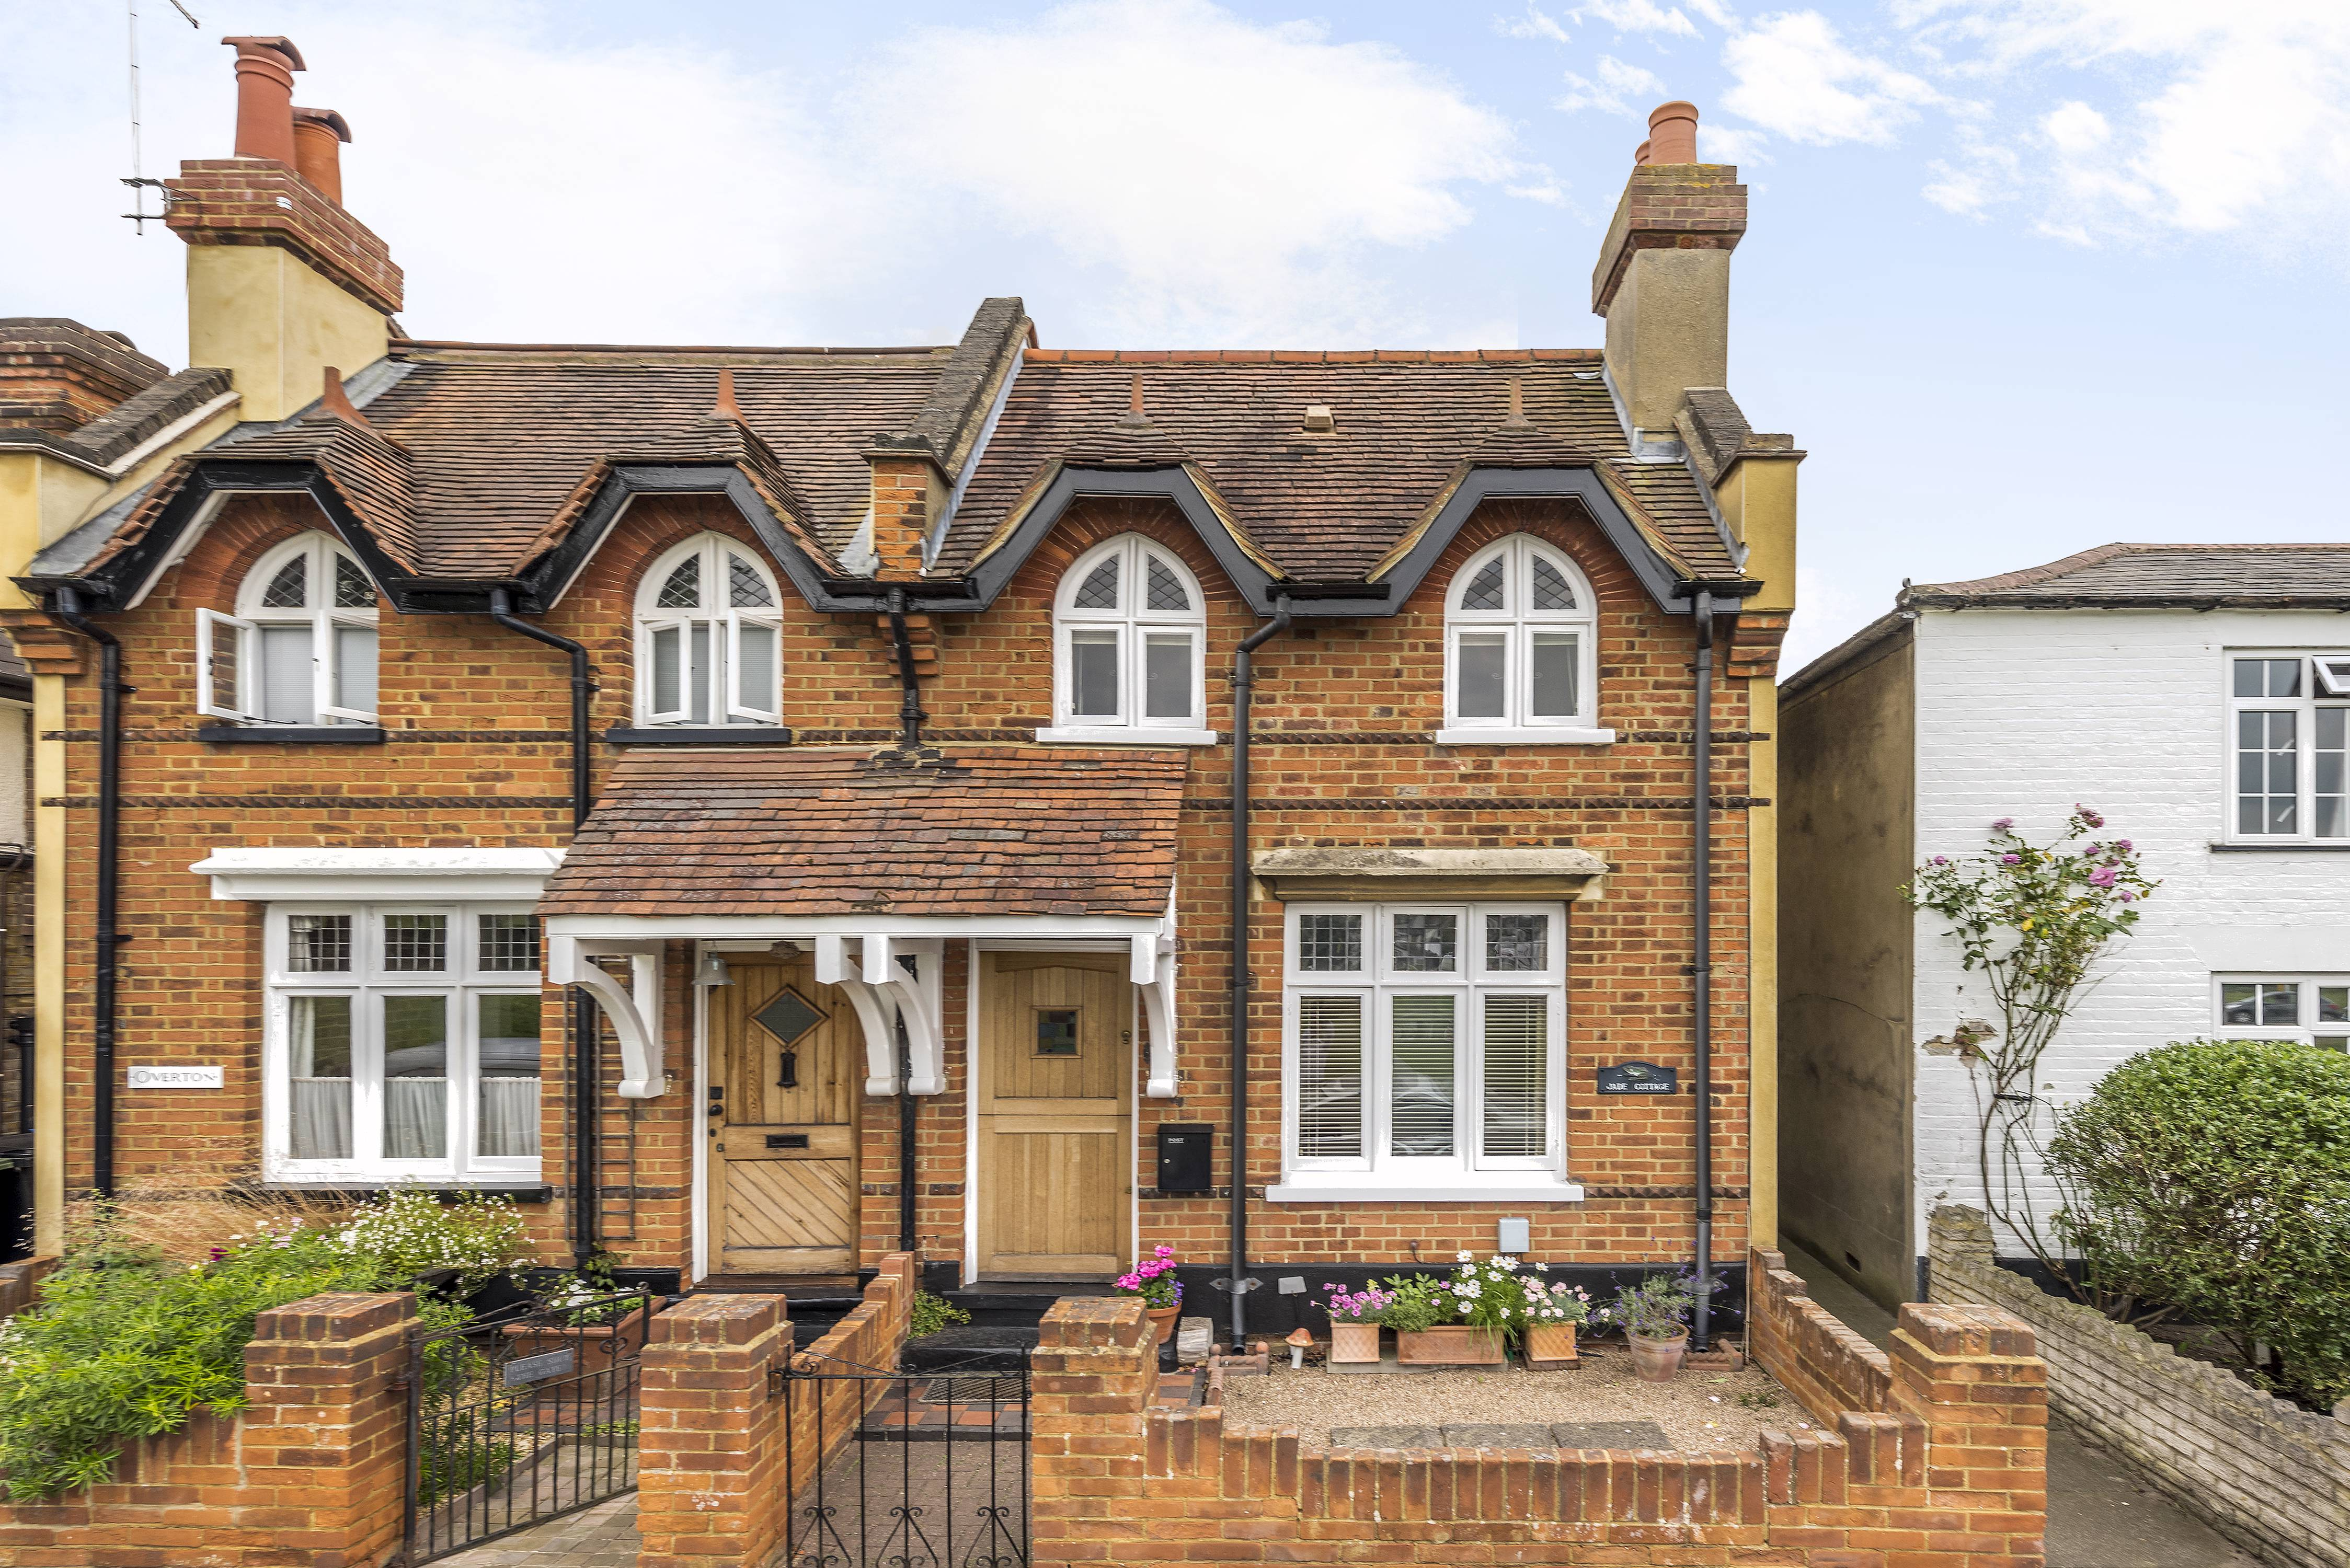 2 Bedrooms Property for sale in Weston Green, Thames Ditton, KT7